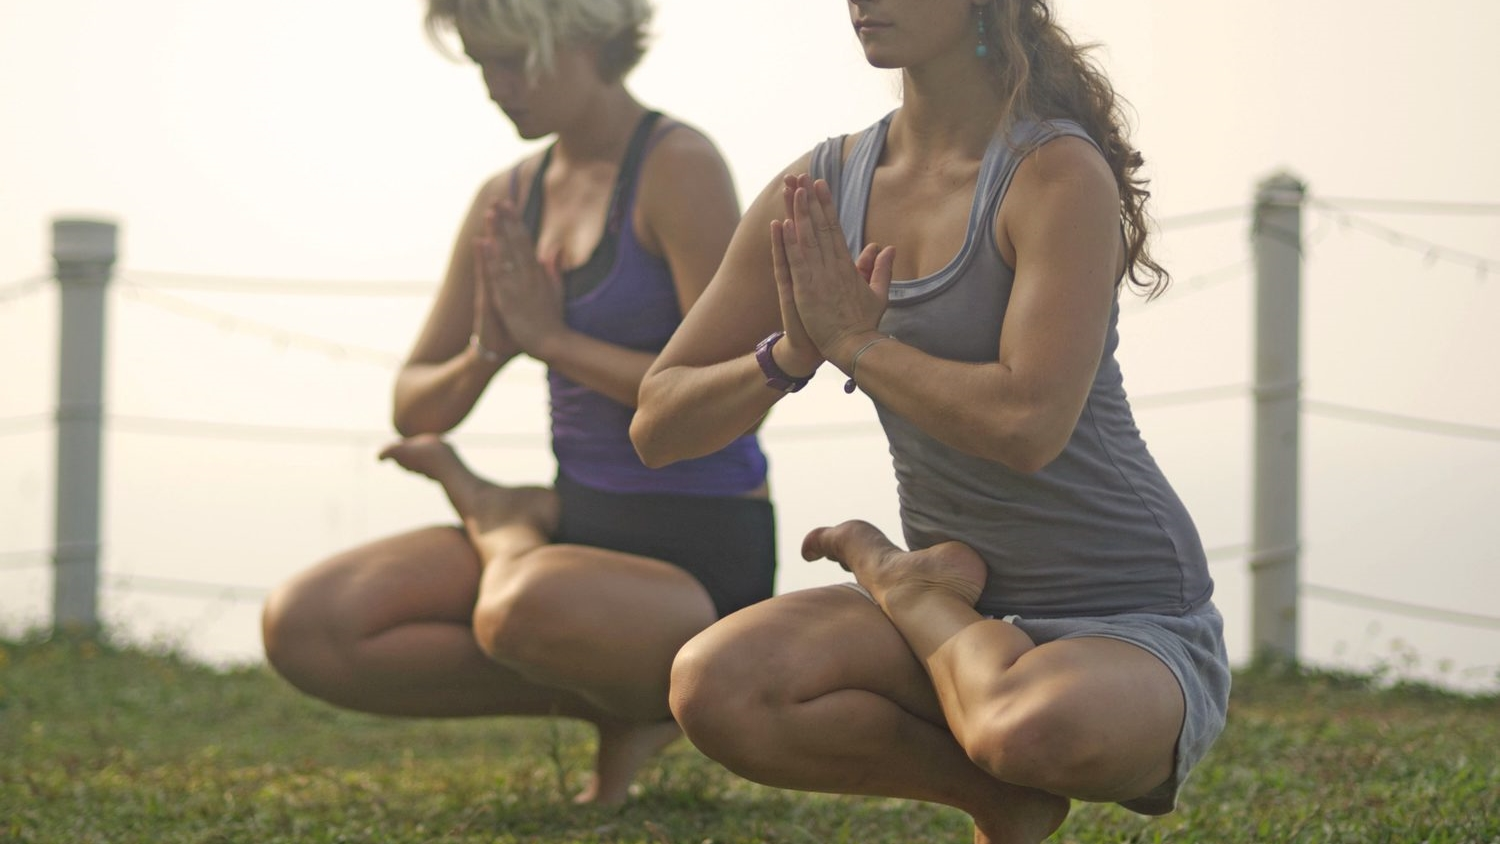 Yoga and Surfing - Balance and coordination